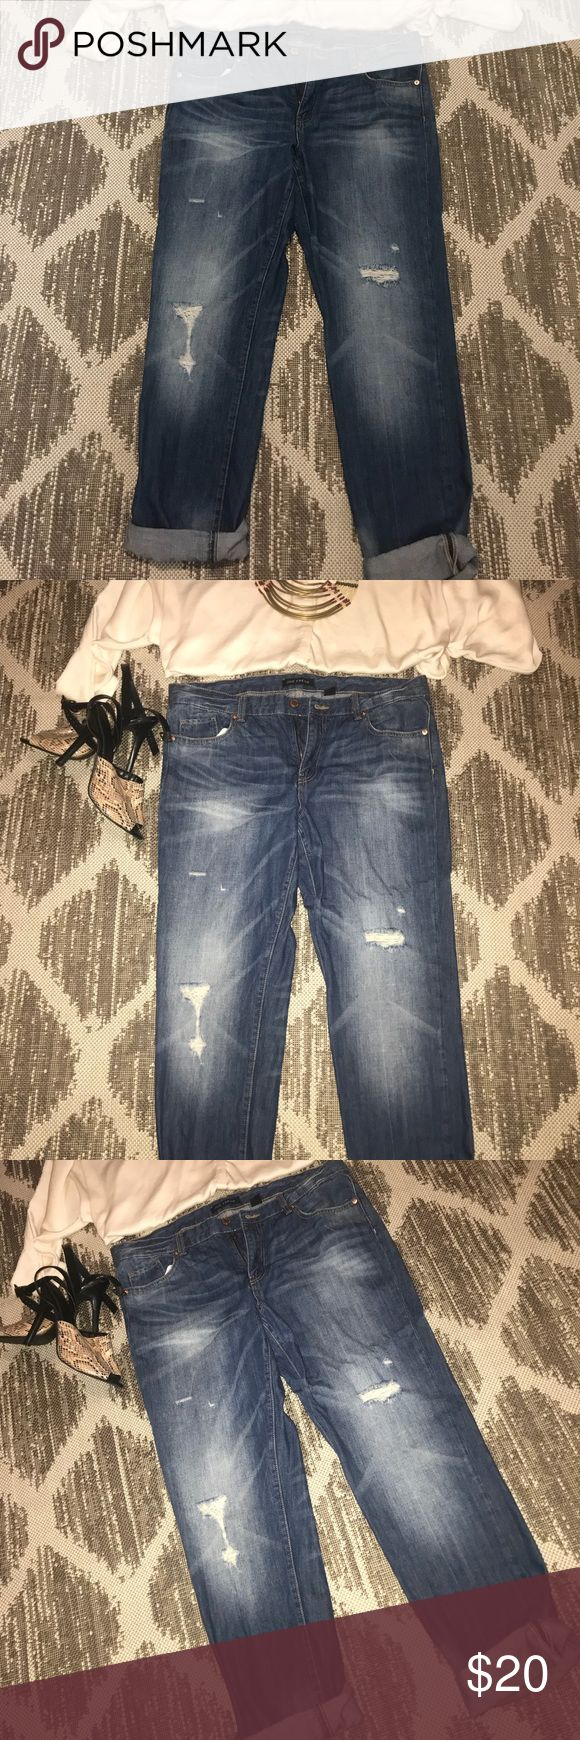 Joe Fresh NWOT Denim Boyfriend Jeans Joe Fresh Distressed Boyfriend Jeans! Never been worn! Dress them up or dress them down, add heels or flats you'll be sure to make a statement in these jeans! All offers accepted! Joe Fresh Jeans Boyfriend